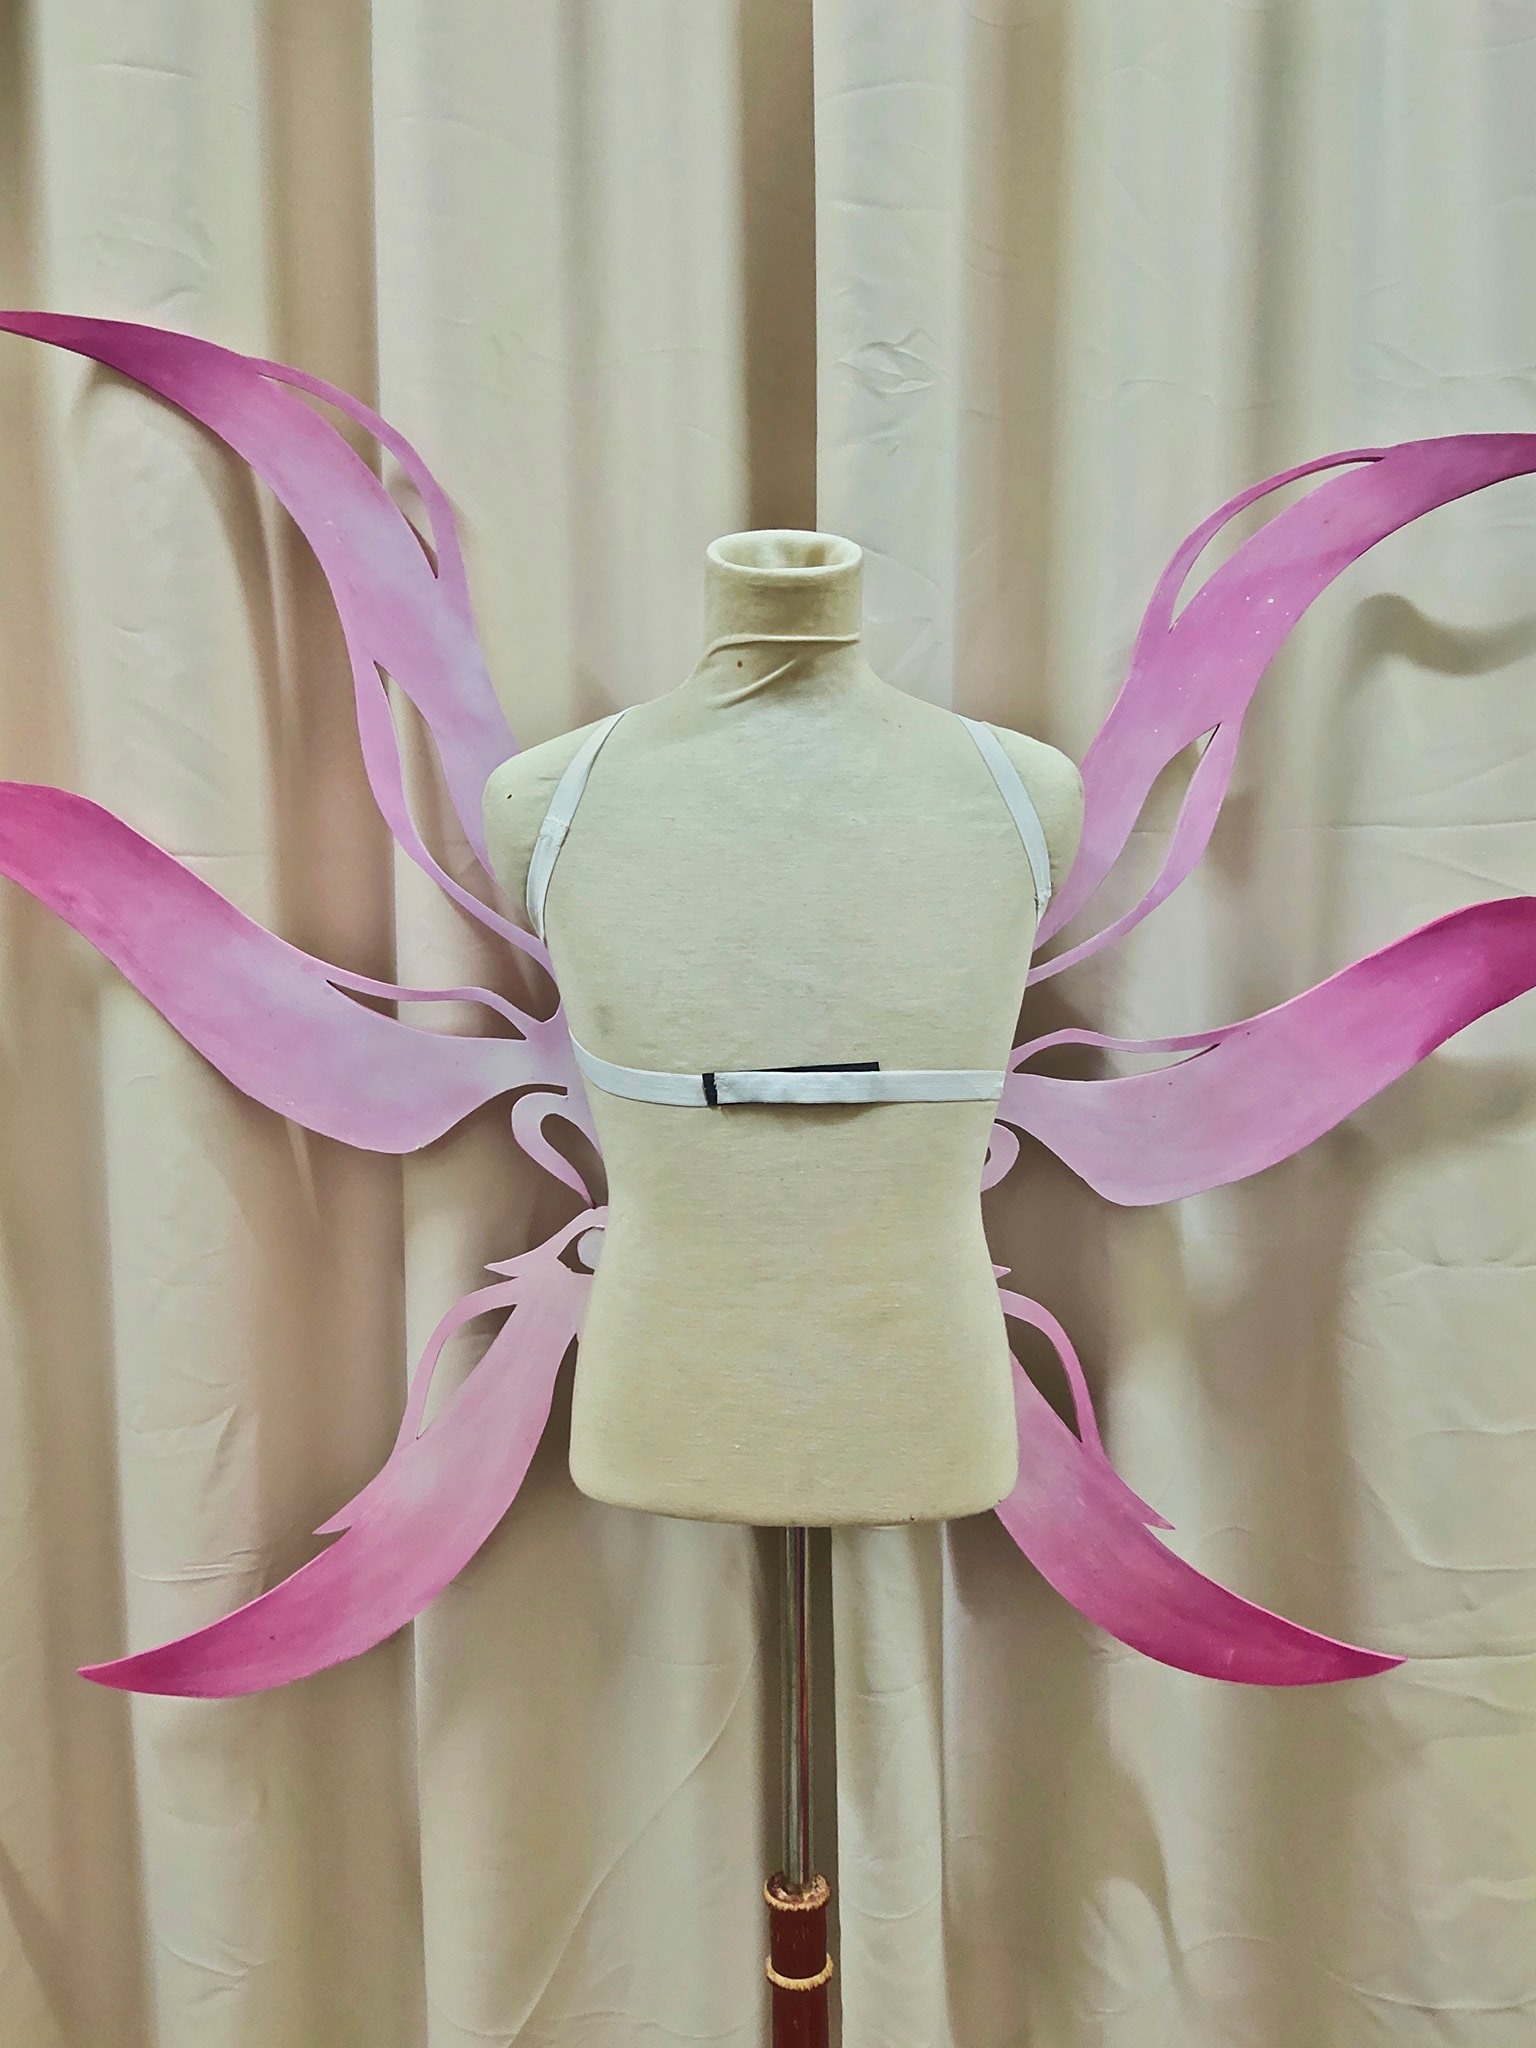 Angel Wing Special Huge Wing Pink Gradient Wings Spirit Yousei Cosplay Tsubasa for Rent | Costumes | RentSmart Asia | Renting Is The New Buying